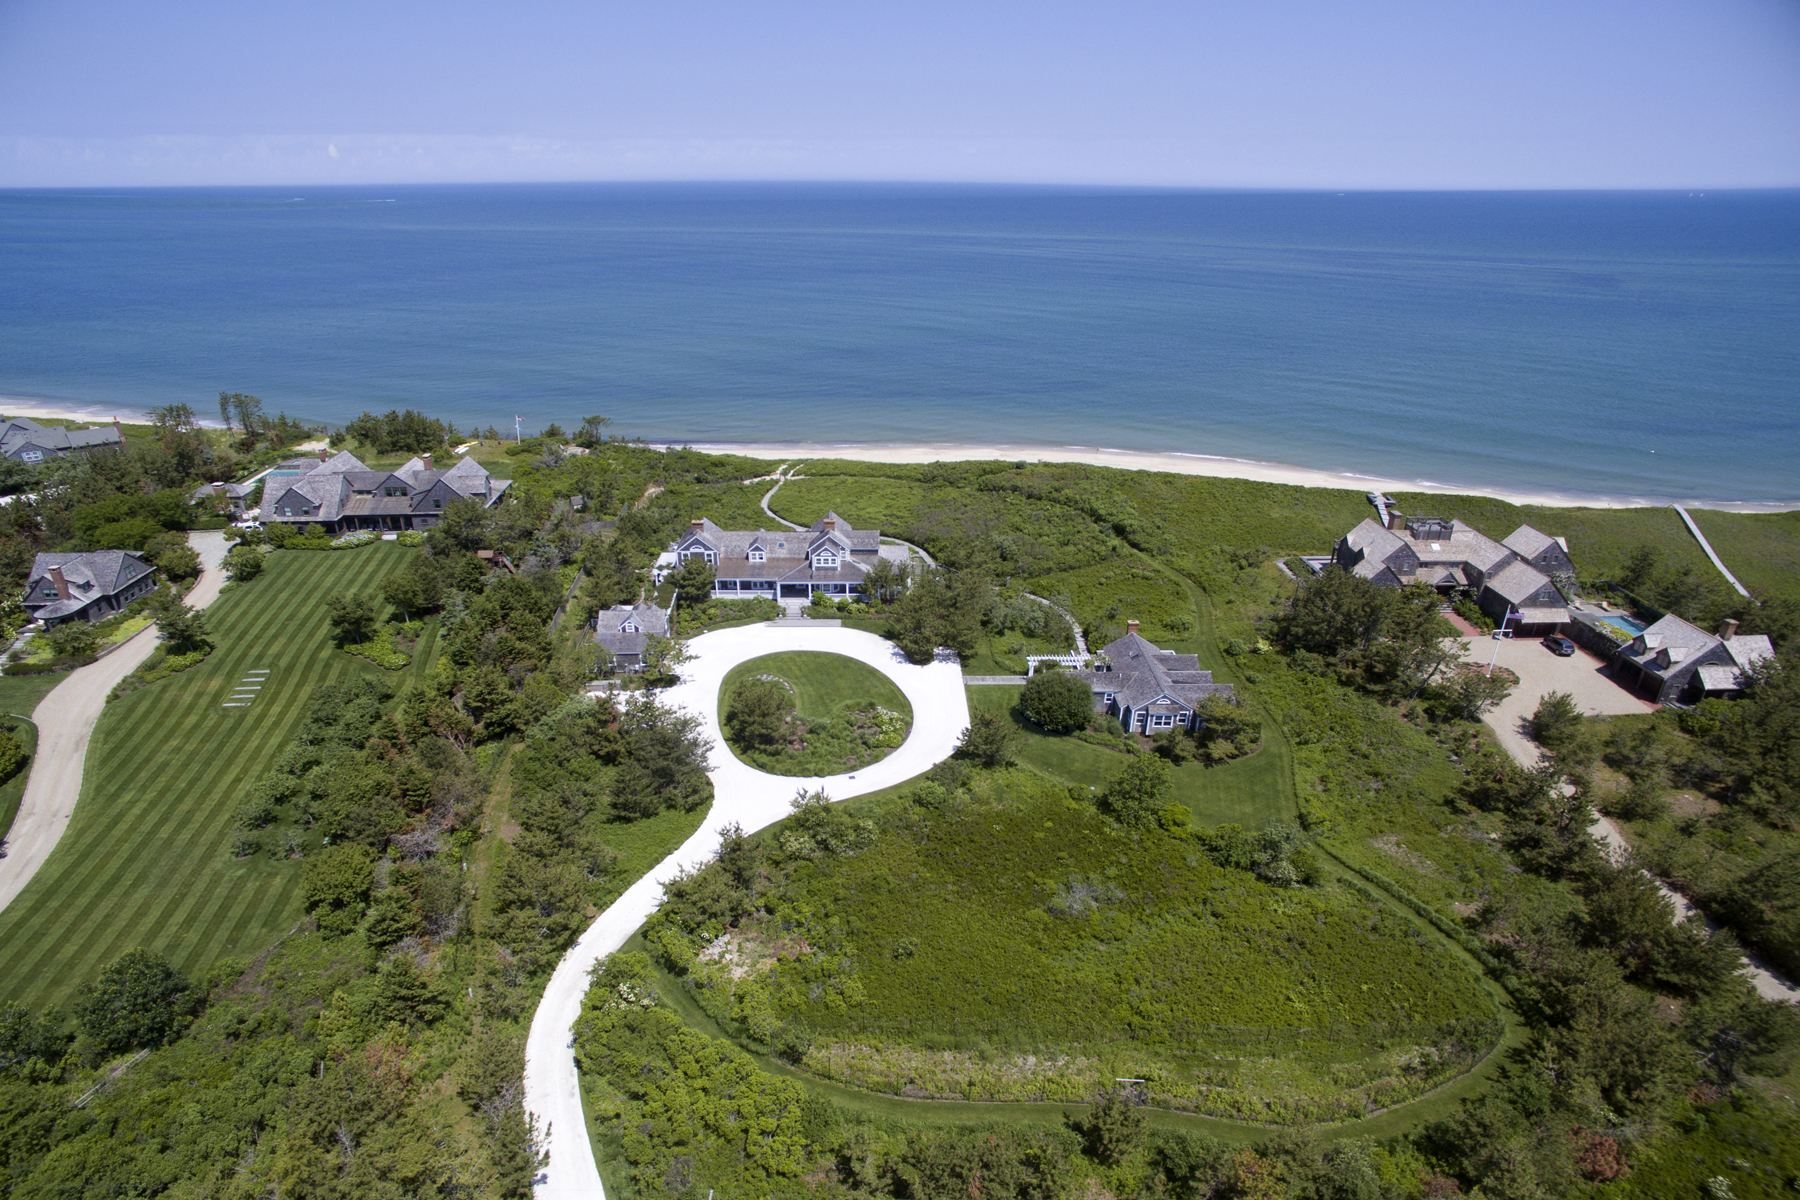 Single Family Home for Active at 7 BEDROOM NORTH SHORE BEACHFRONT COMPOUND 119 Eel Point Road 119 R Eel Point Road Nantucket, Massachusetts 02554 United States